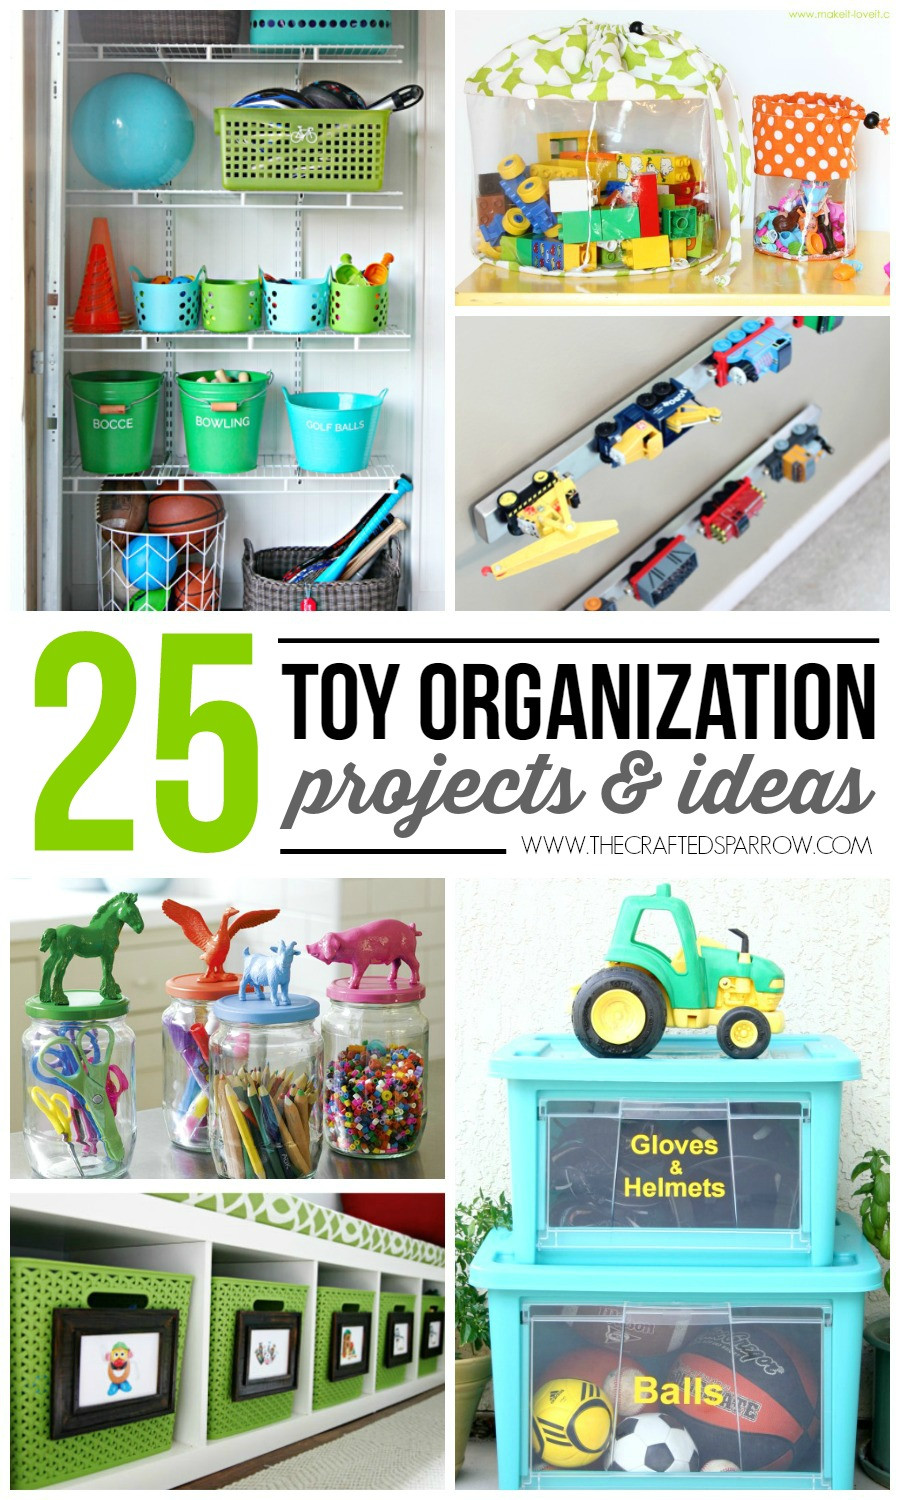 Kids Toy Organizing Ideas  25 Toy Organization Projects & Ideas